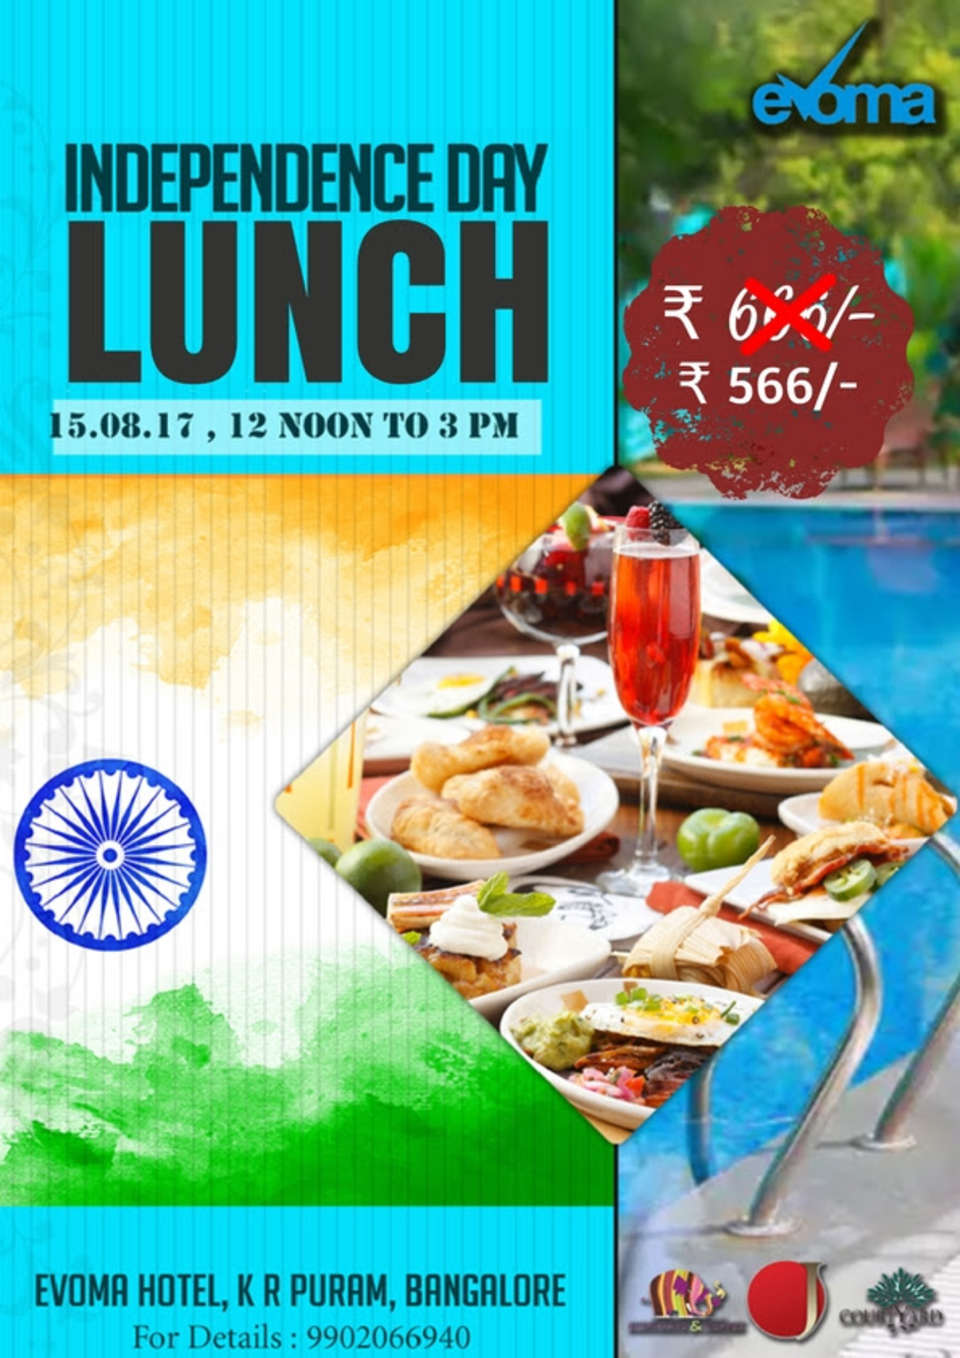 Evoma - Business Hotel, K R Puram, Bangalore Bangalore independence-day-lunch-evoma